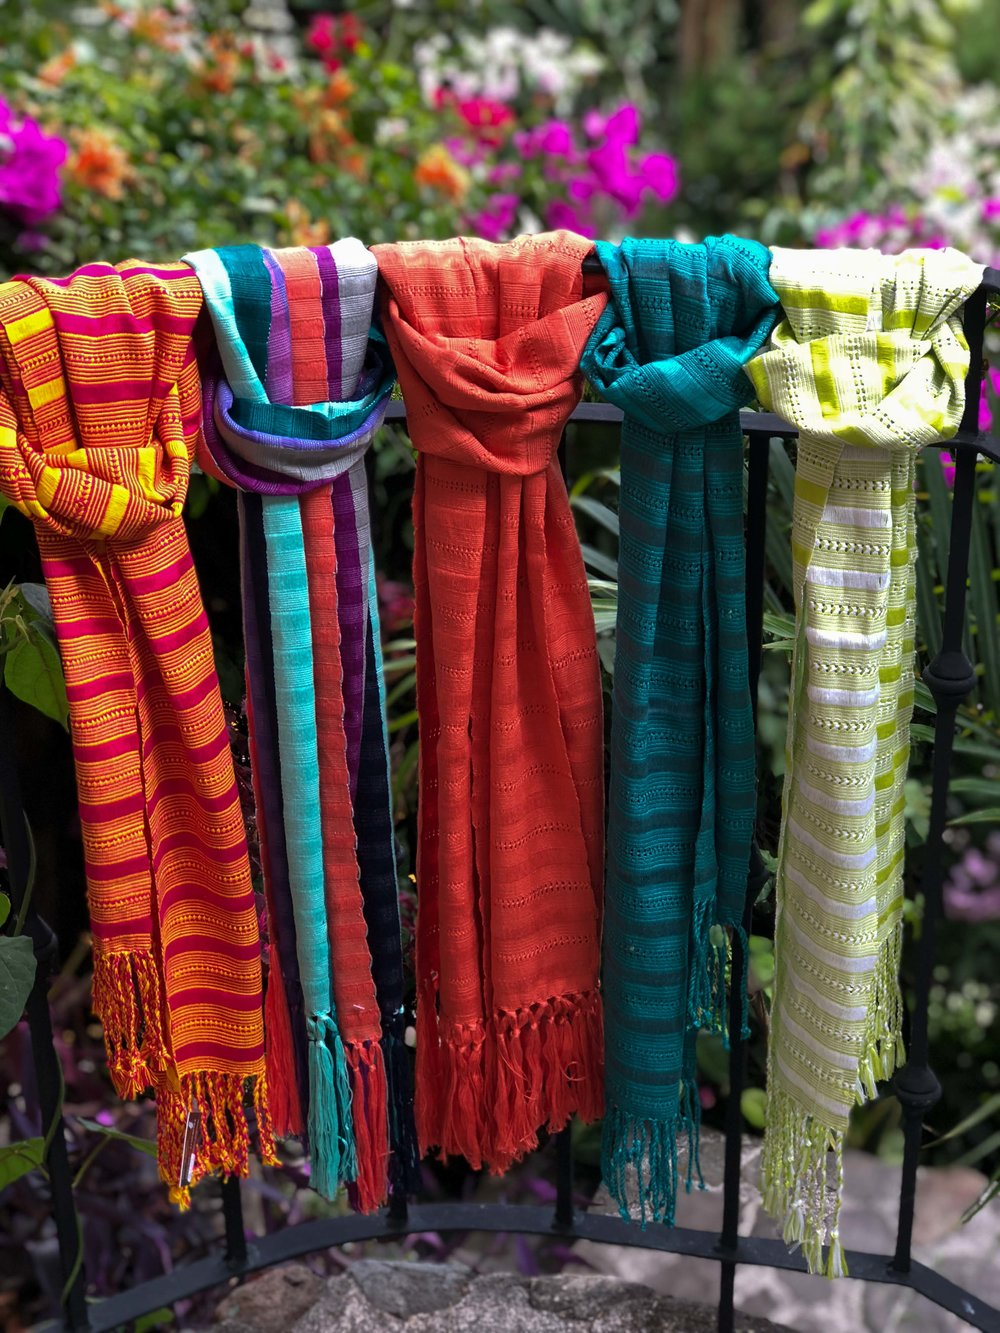 clothing-Amigos scarves5-0886.jpg